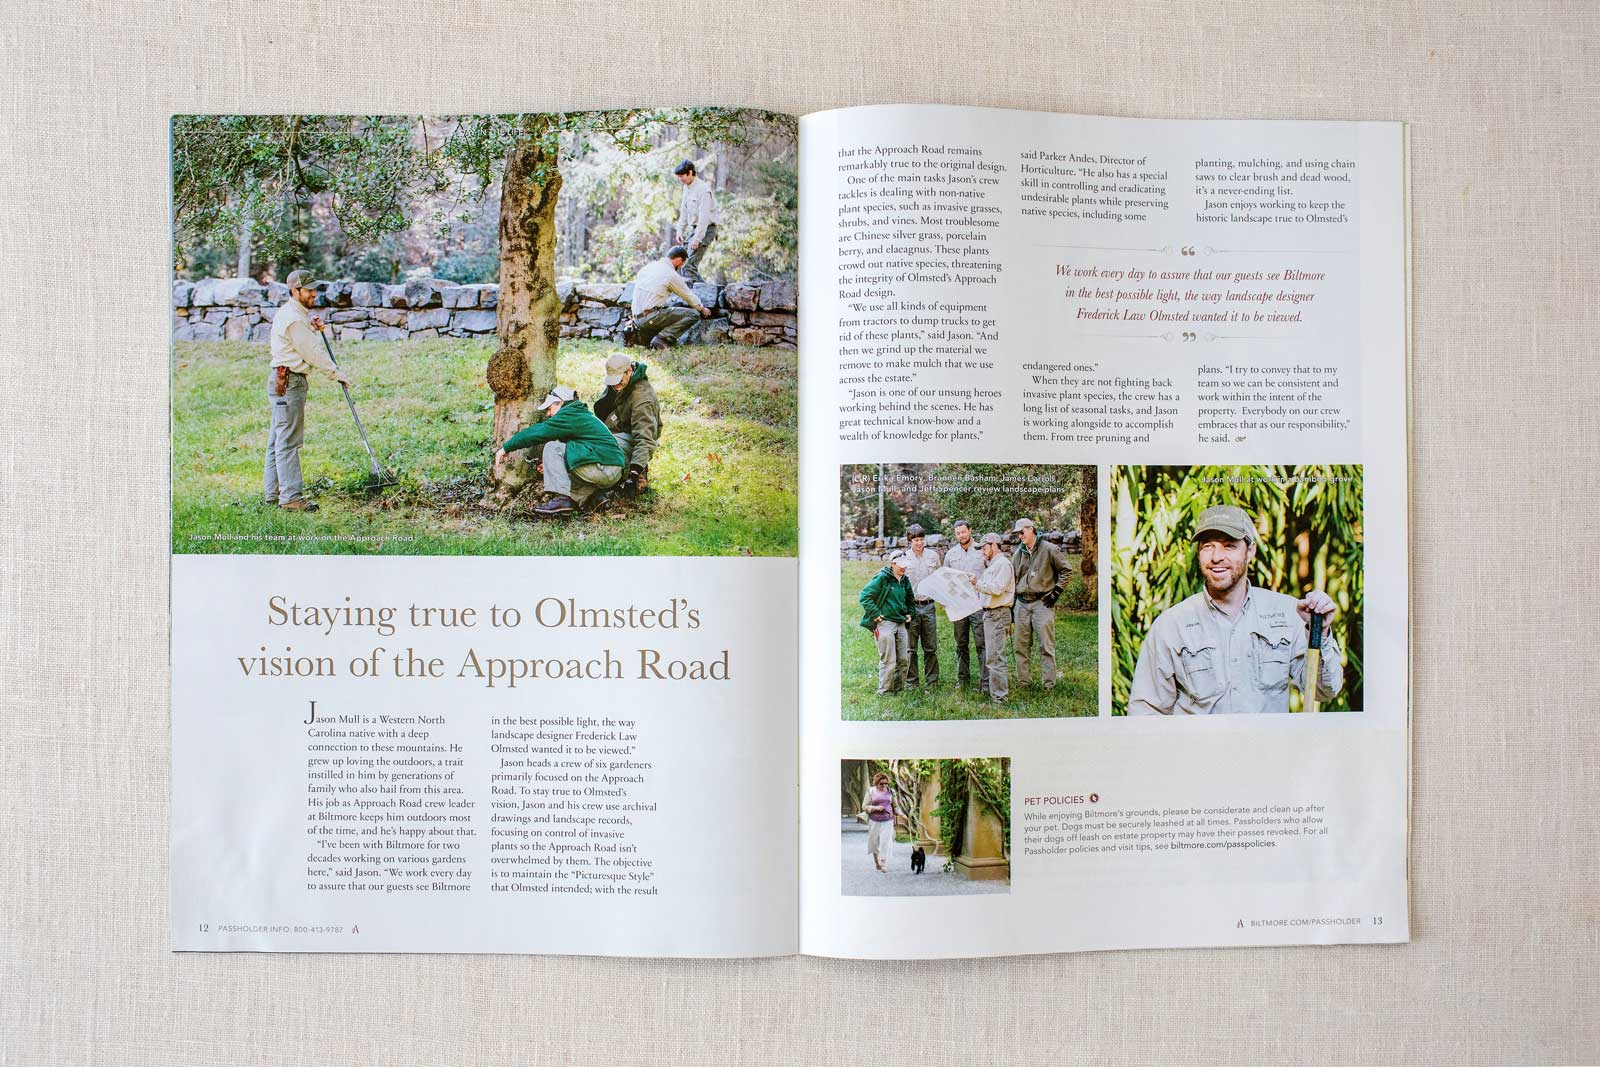 Biltmore Estate Ambassador Magazine spread with groundskeepers maintaining a tree on Approach Road